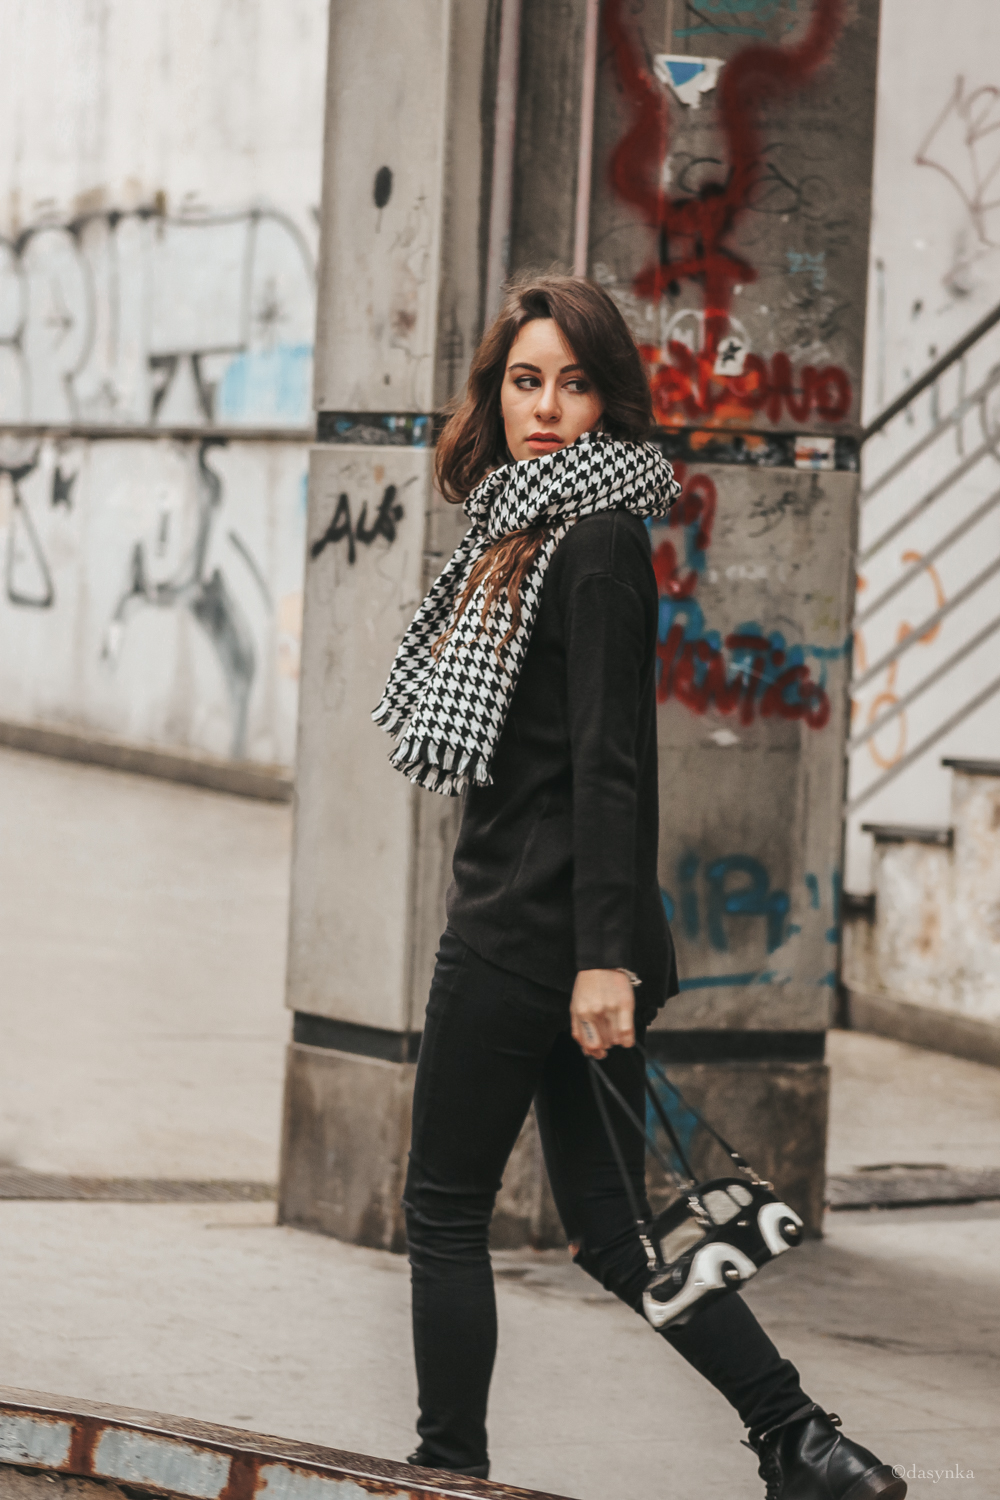 dasynka-fashion-blog-blogger-influencer-inspiration-shooting-model-globettrotter-travel-girl-lookbook-instagram-long-hair-street-style-casual-italy-lifestyle-outfit-poses-pants-trousers-bag-black-look-inspo-ideas-spring-scarf-pied-de-poule-white-ripped-jeans-sweater-cozy-comfy-stylish-car-dr-martines-boots-anfibi